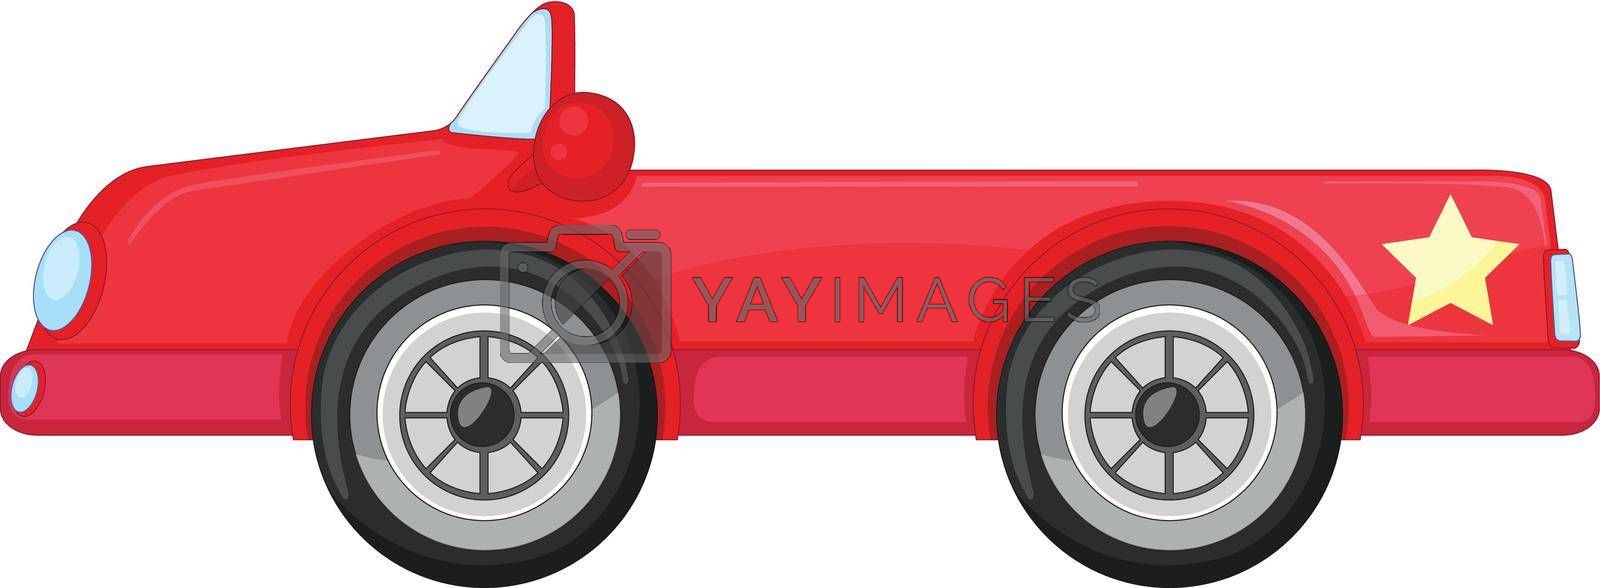 illustration of a red car on a white background